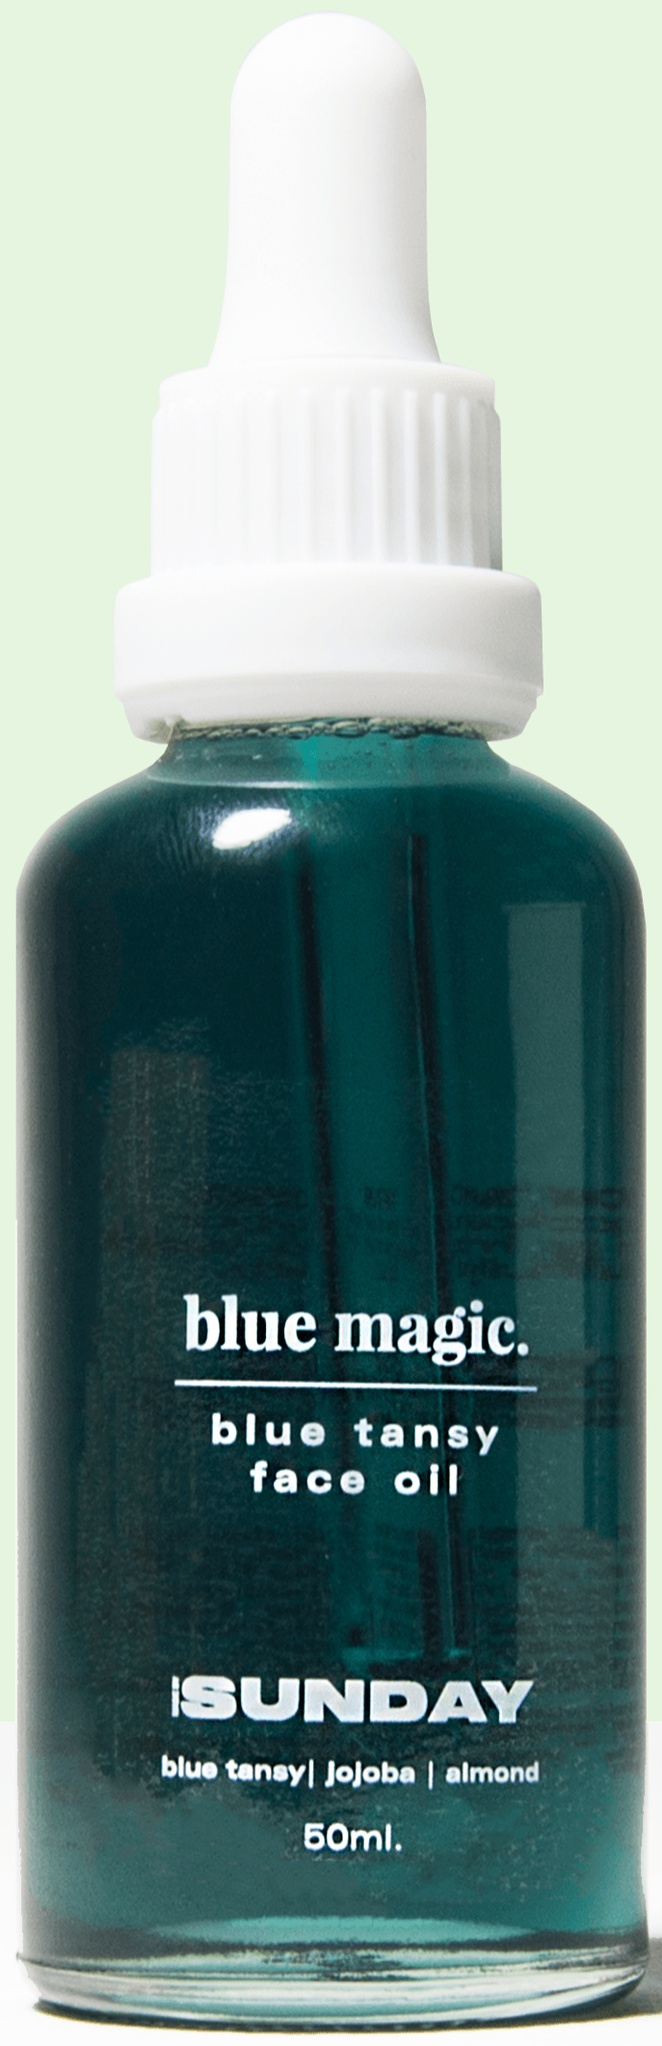 Made by Sunday Blue Magic - Blue Tansy Face Oil